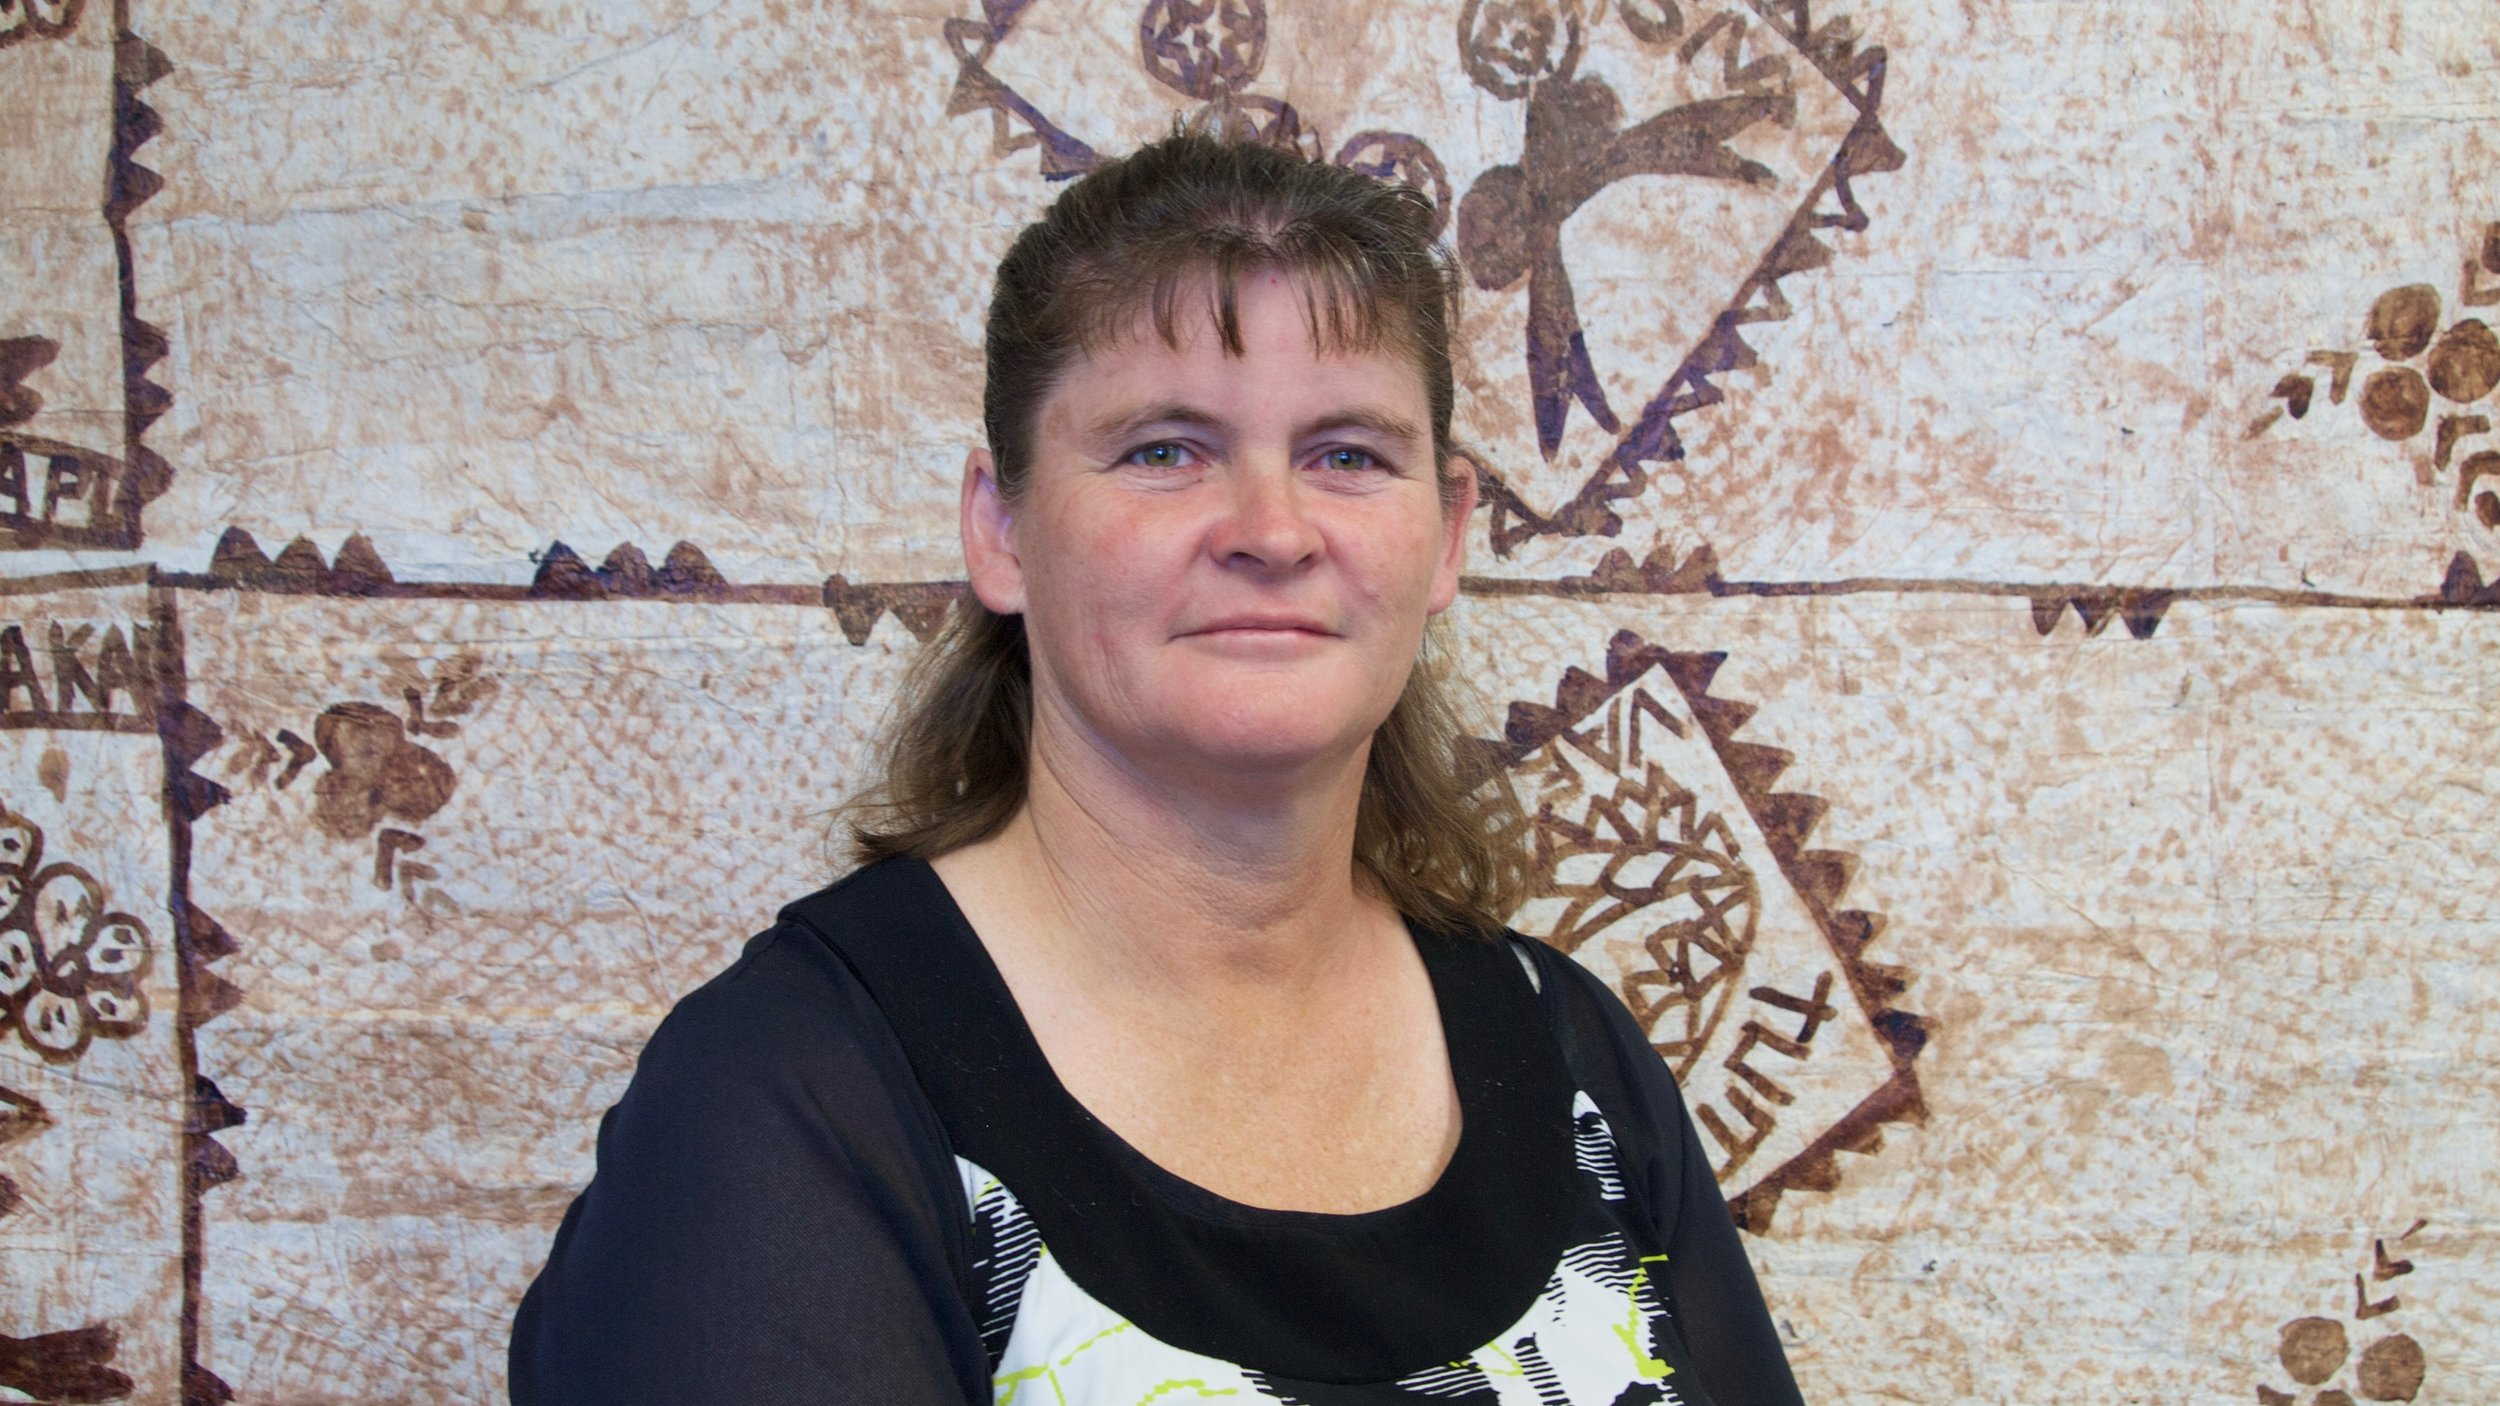 Ruth Sinclair   Ruth Sinclair joined the Board in 2005, bringing a wealth of experience in accounting for a variety of organisations.  She was a specialist in tax planning, management reporting, and systems installations at Coopers and Lybrand of Manukau.  She currently contracts to businesses, focussing on management and information systems development, reporting and analysis.